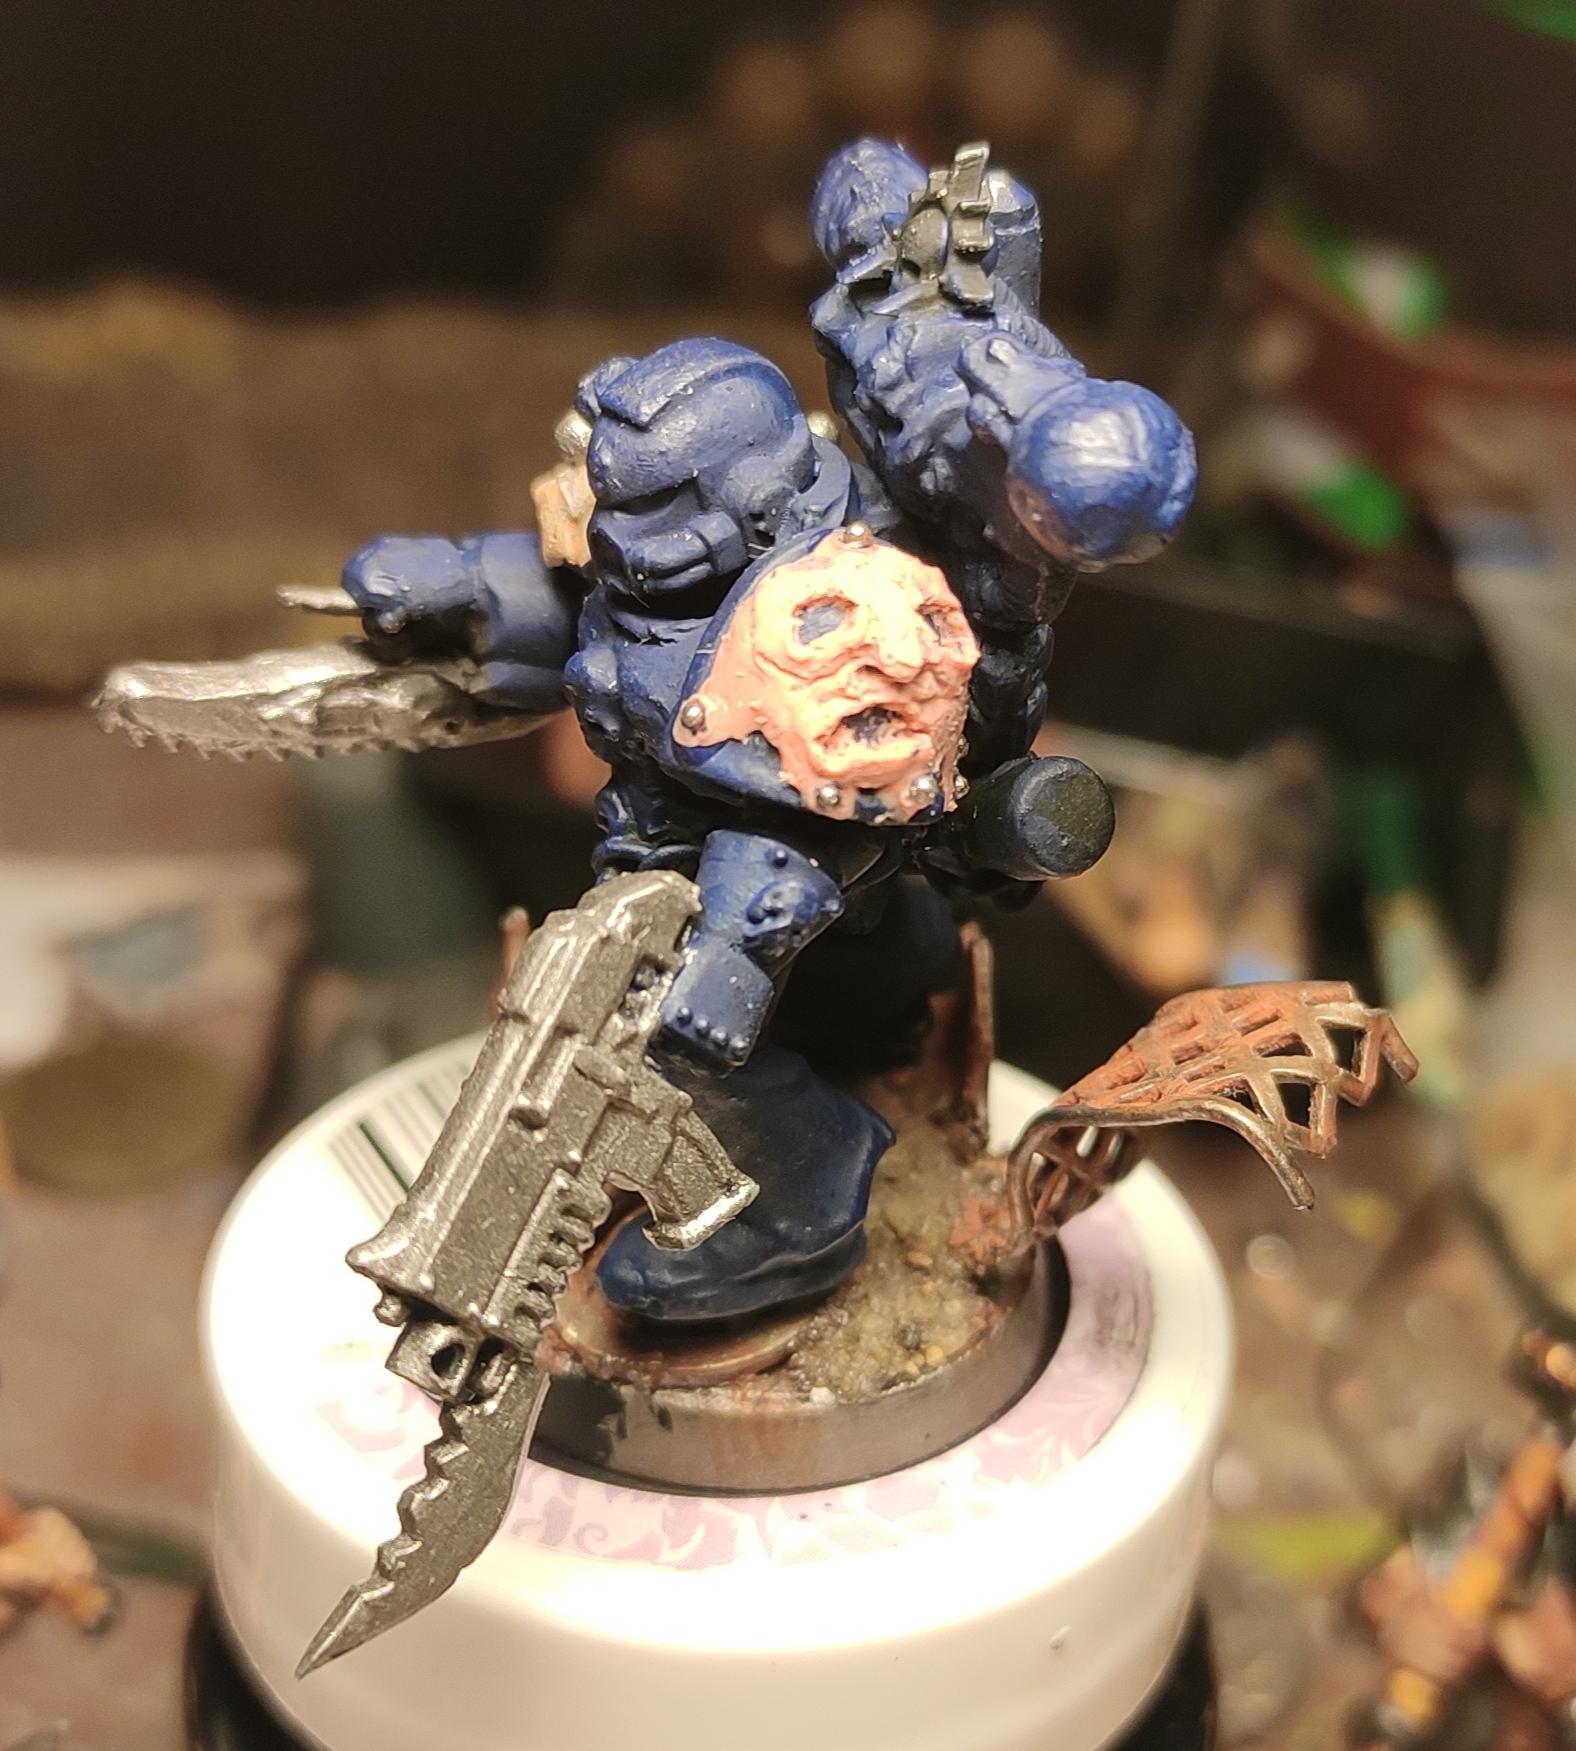 Apothecary, Ave Dominus Nox, Bayonet, Blurred Photo, Bolter, Chaos, Chaos Space Marines, Chaos Undivided, Container, Conversion, Epoxy, Face, First Claw, Flayed Face, Flayed Skin, Heresy, Heretic Astartes, Kitbash, Narthecium, Night Lords, Putty, Scratch Build, Sculpting, Traitor Legions, Trophy, Variel, Variel The Flayer, Warhammer 40,000, Work In Progress